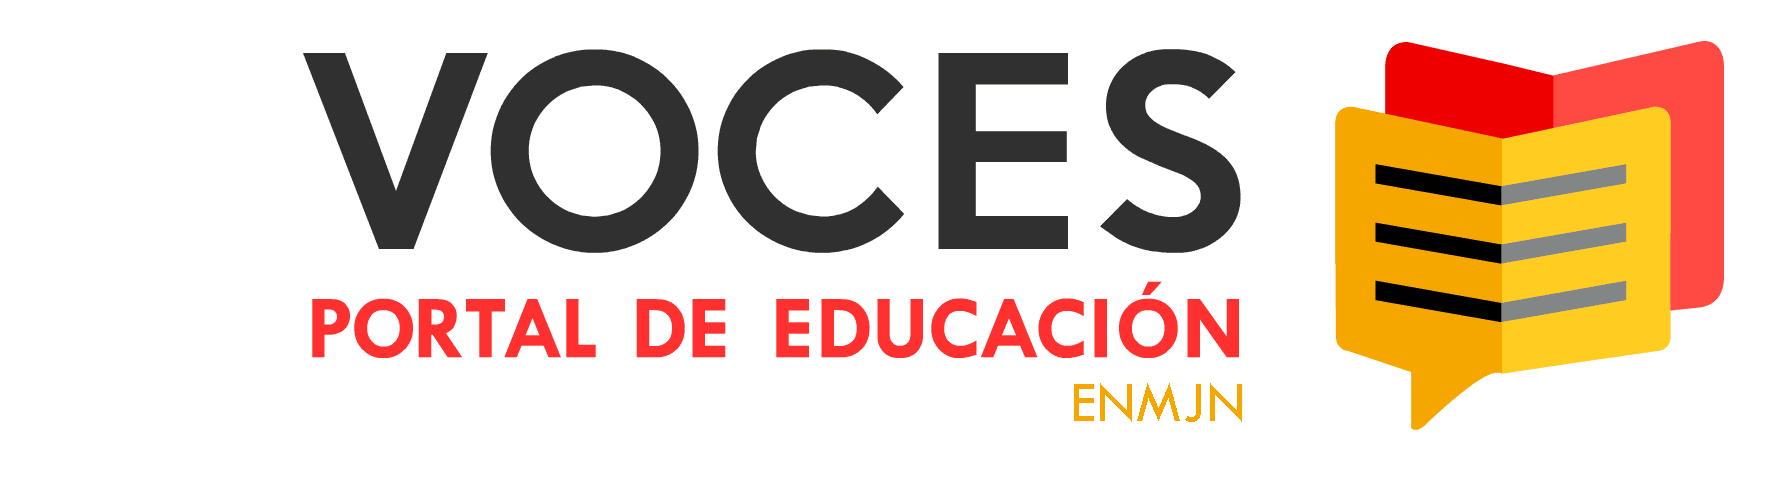 Revista Voces